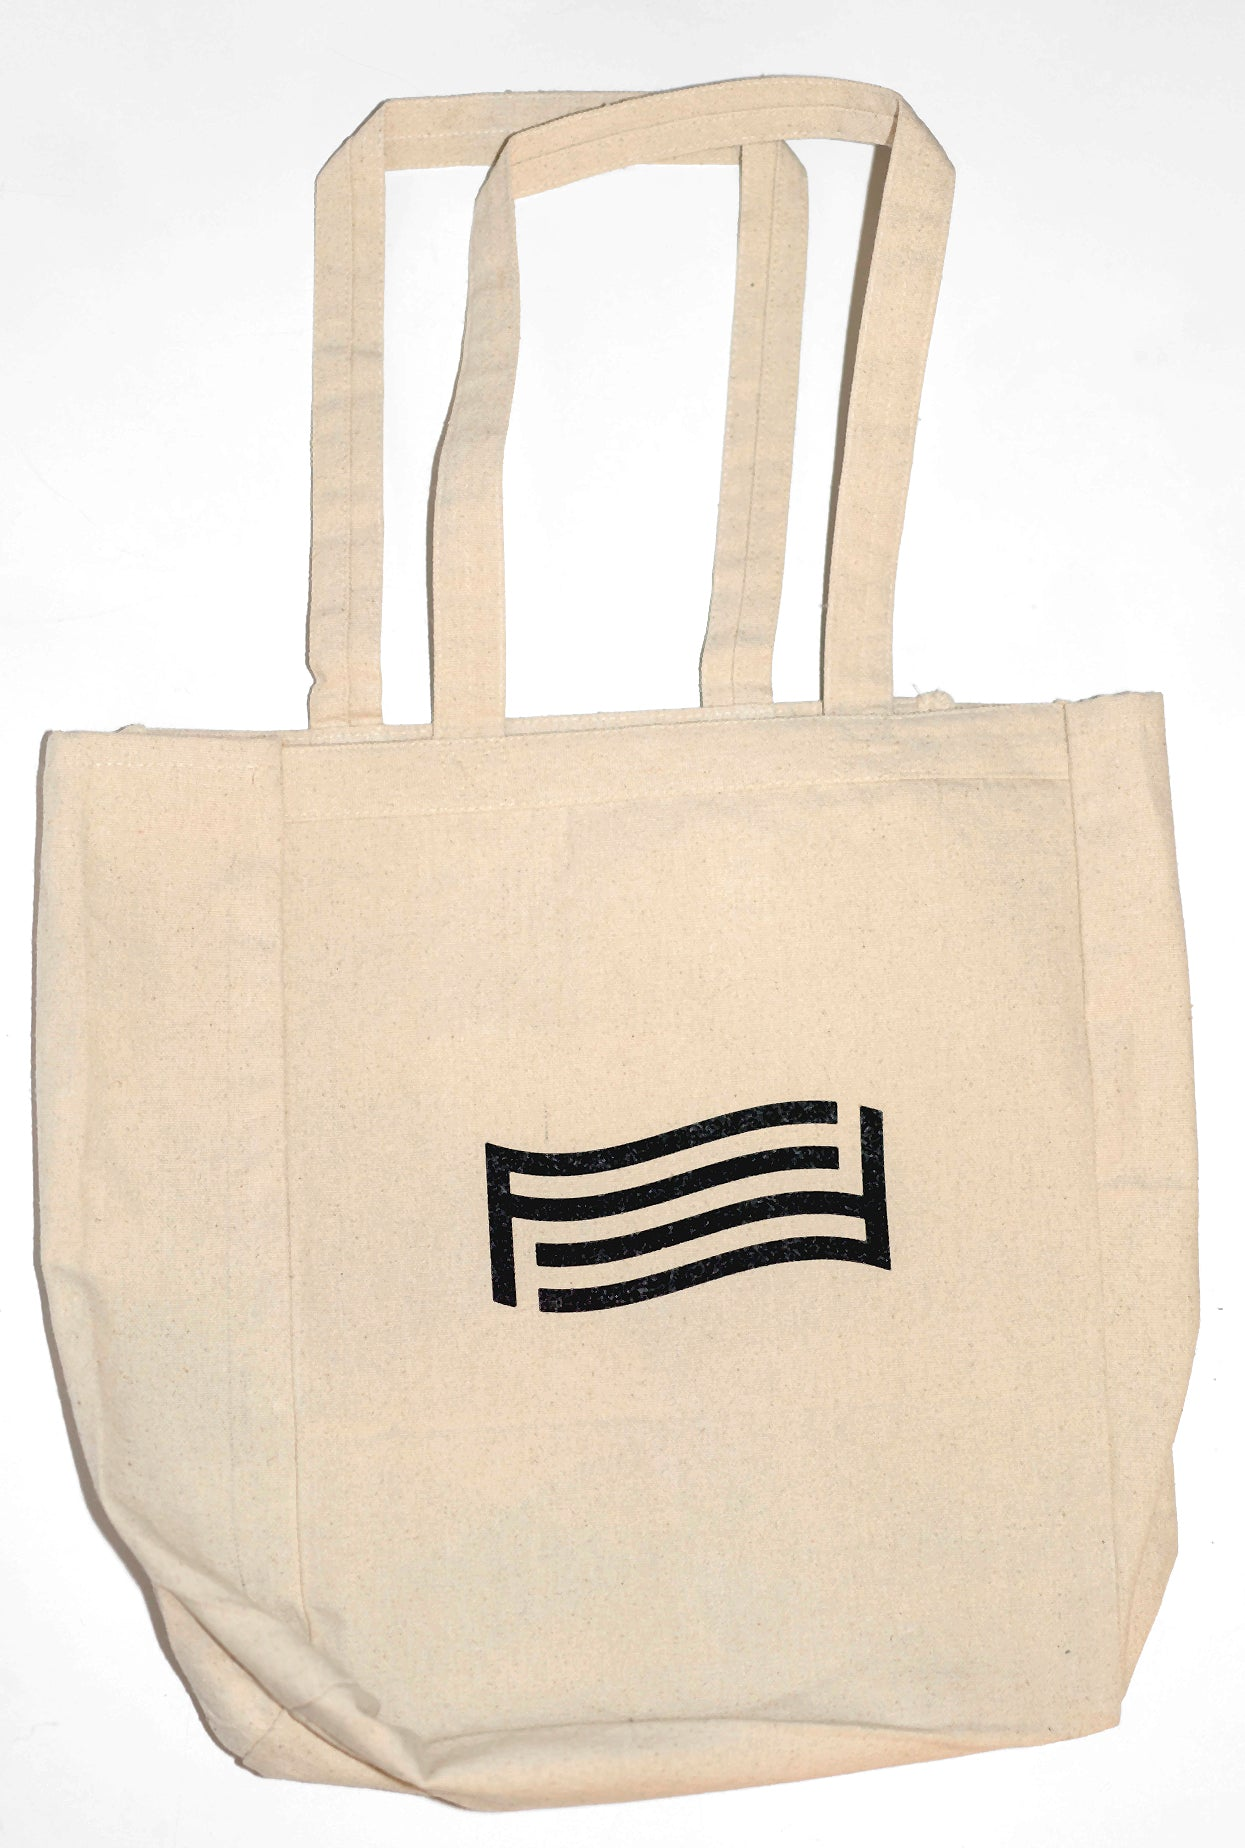 For Freedoms Tan Tote